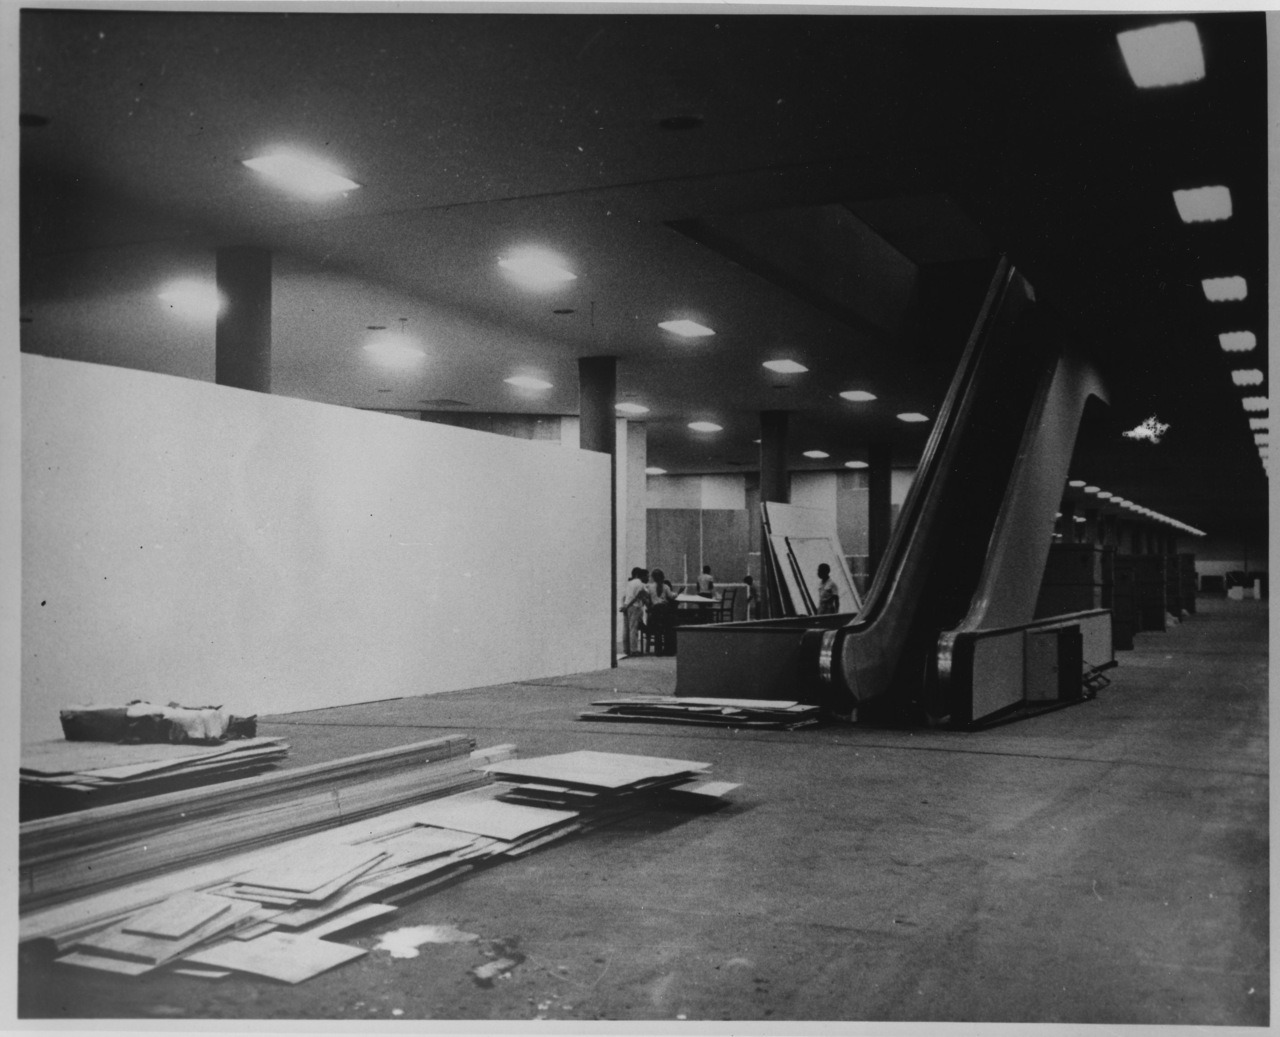 installing the 1967 sao paolo biennale. the exhibit's only appearance in the USA was at the rose.